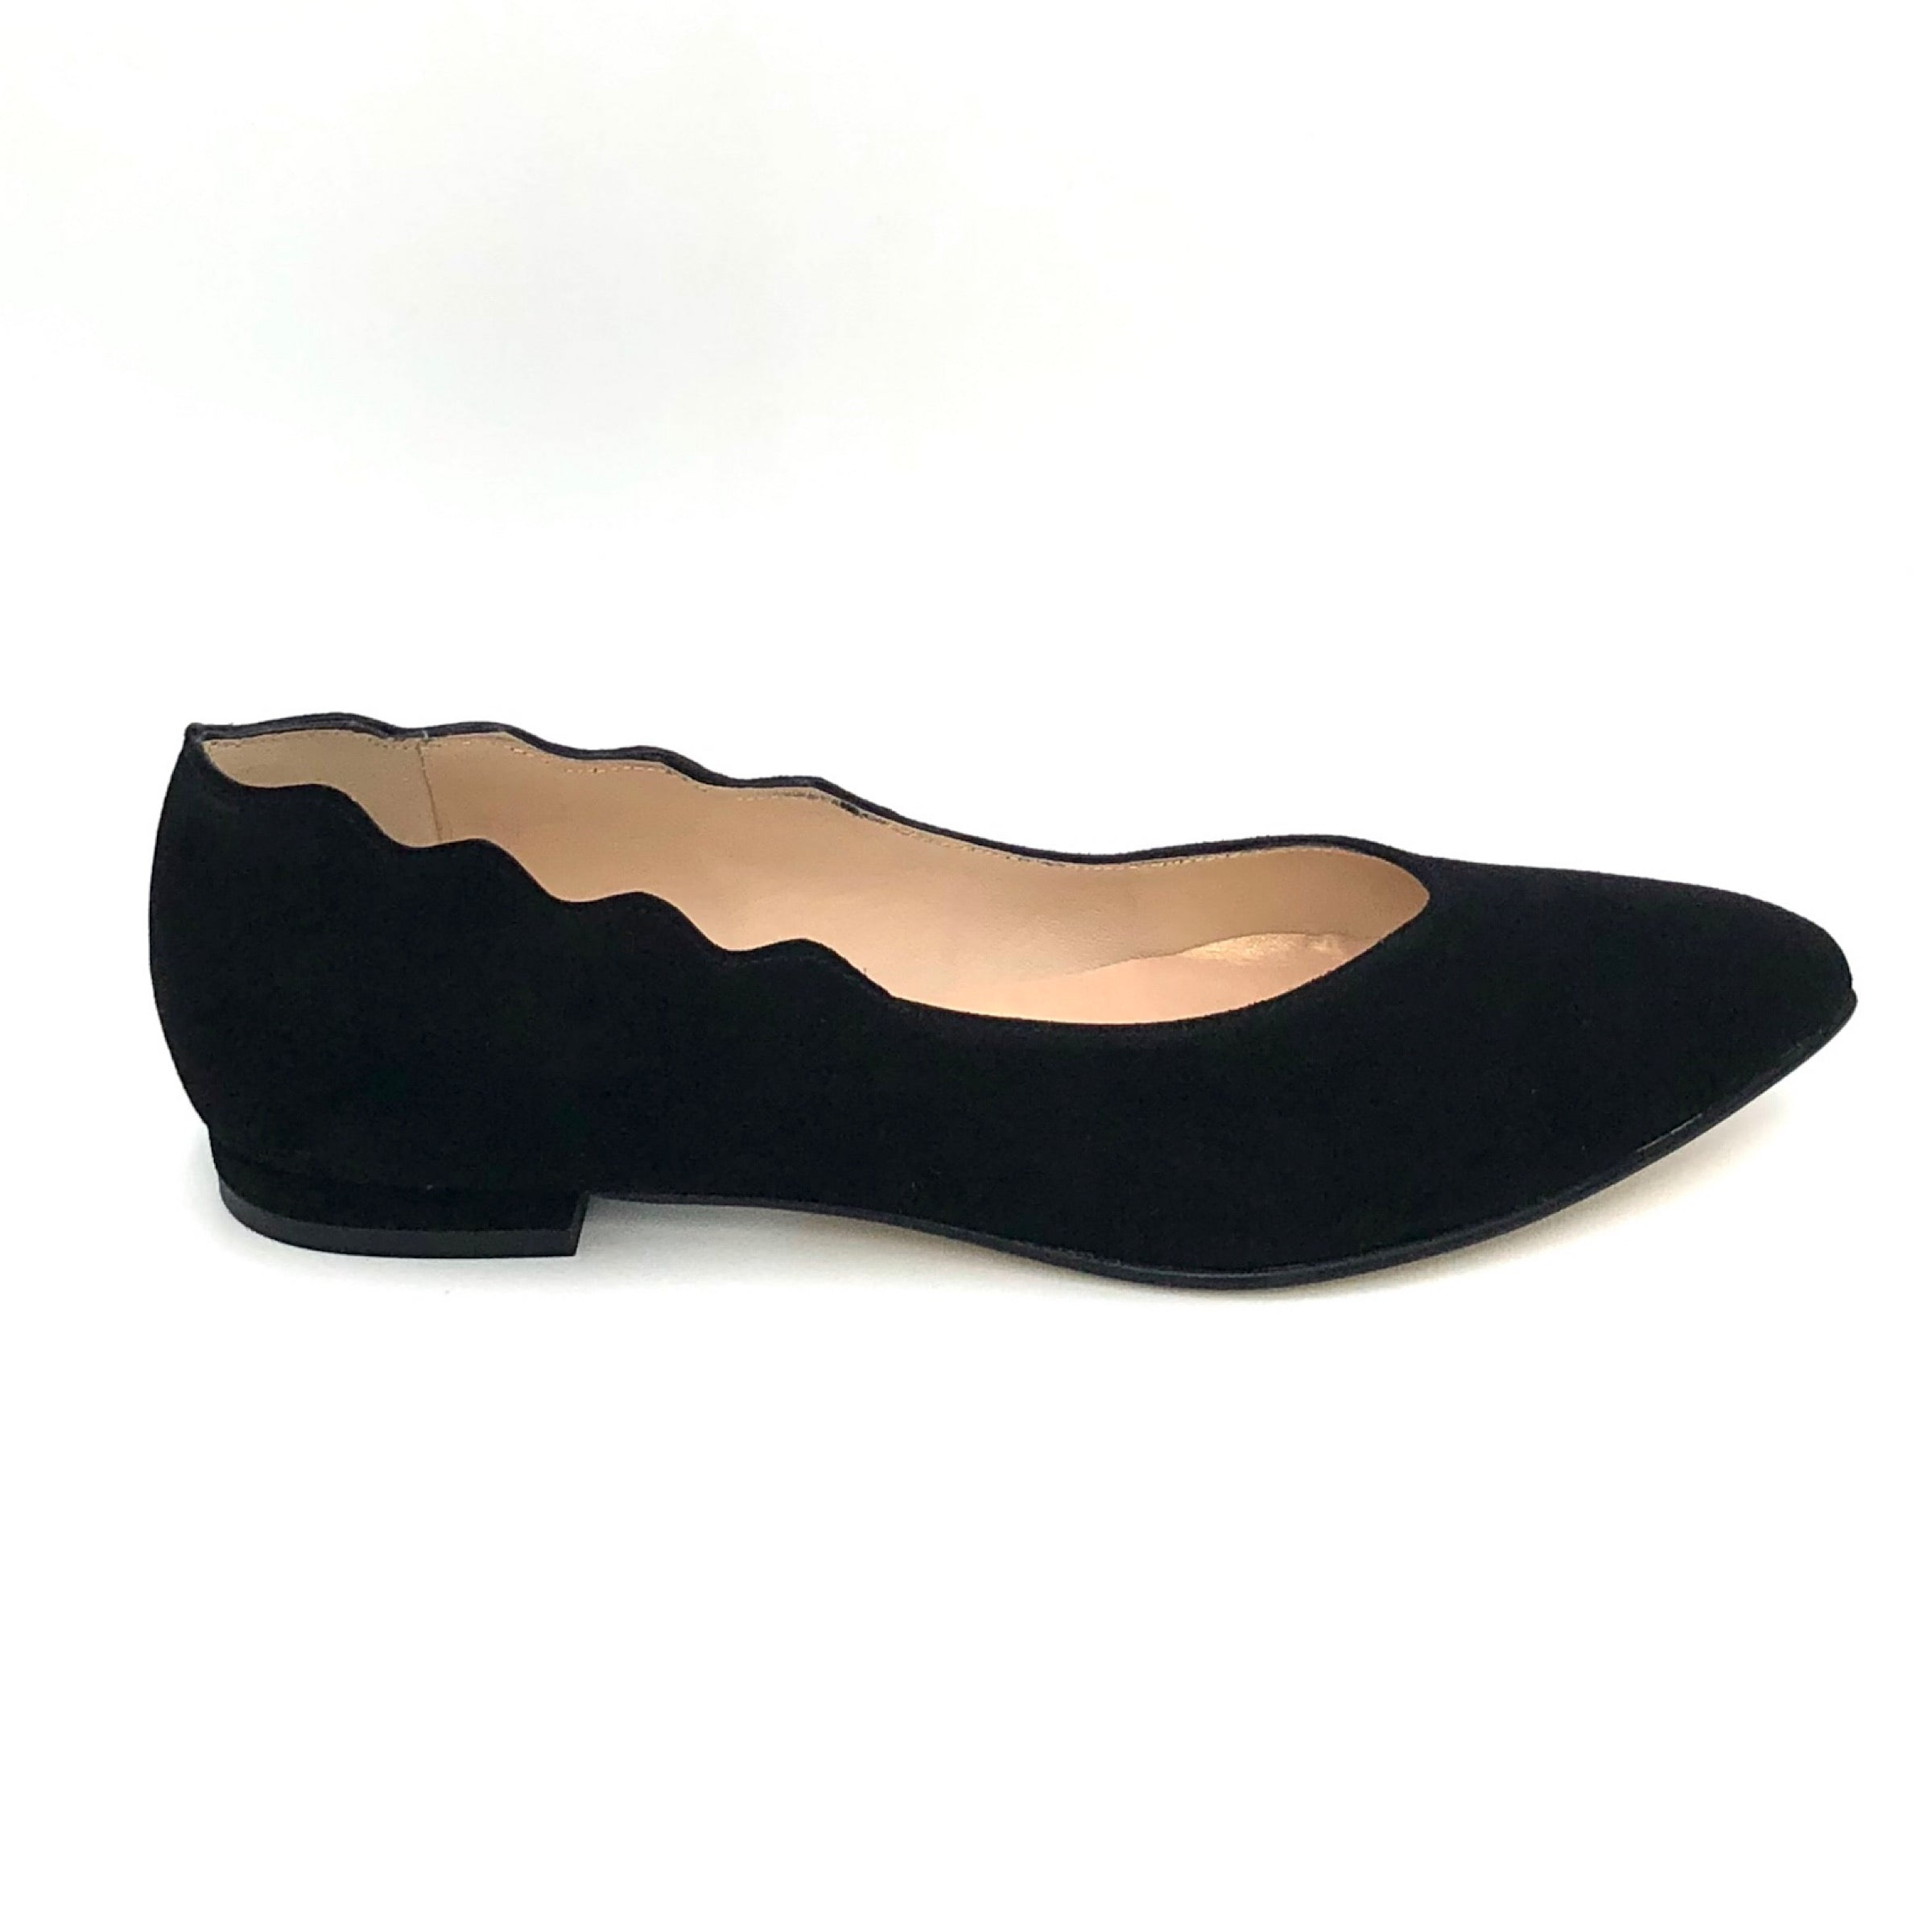 The Almond Flat with Scallop Edge in Black